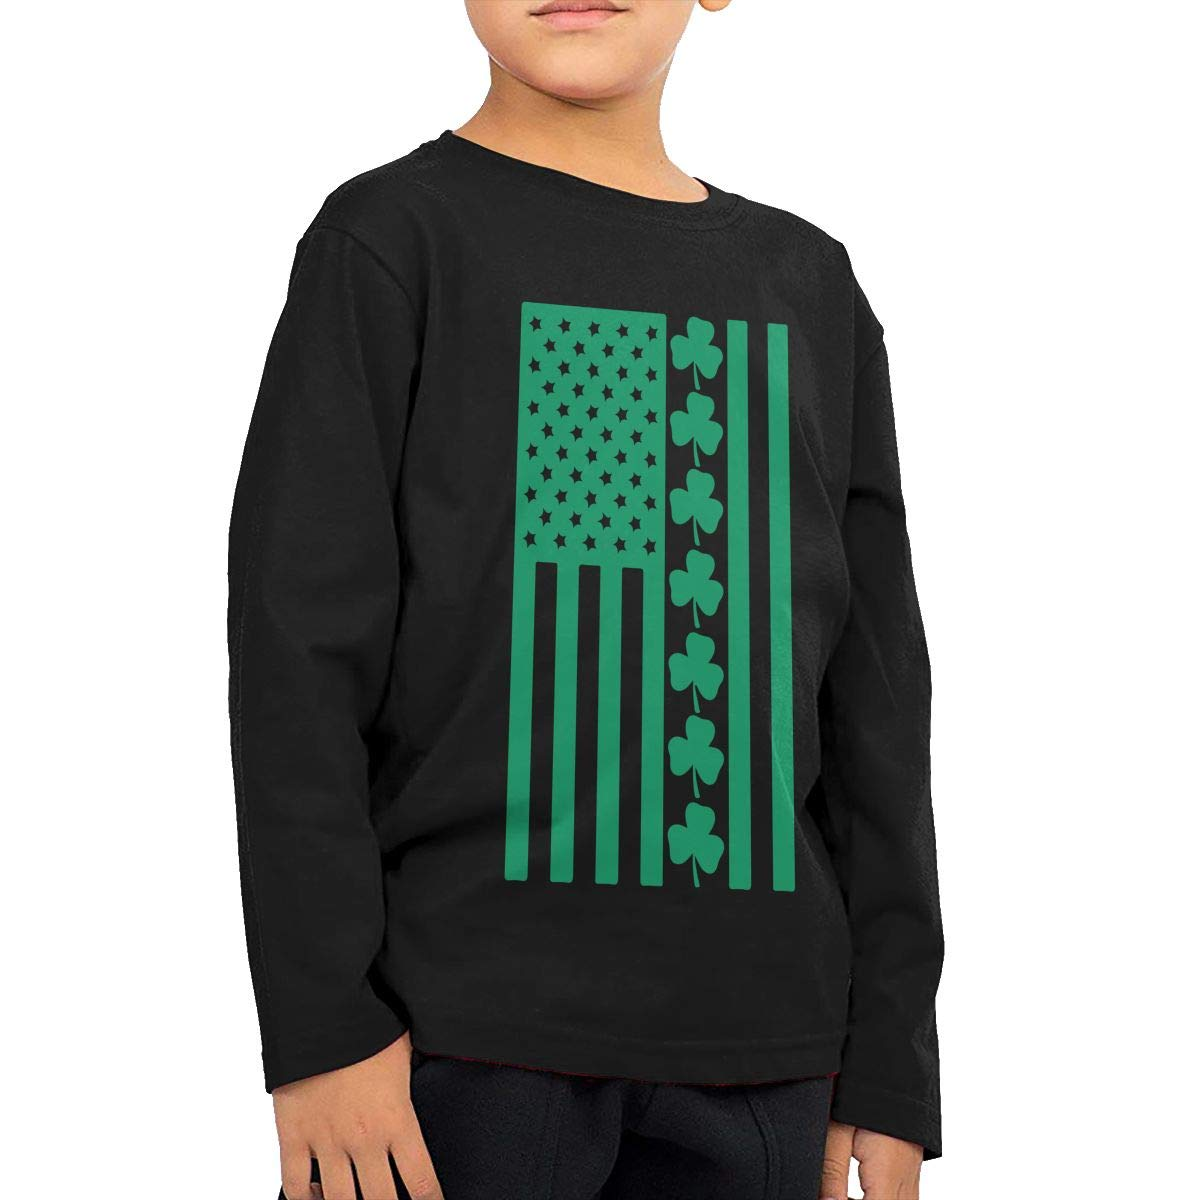 CERTONGCXTS Baby Boys Kids St.Patrick s Day ComfortSoft Long Sleeve T-Shirt